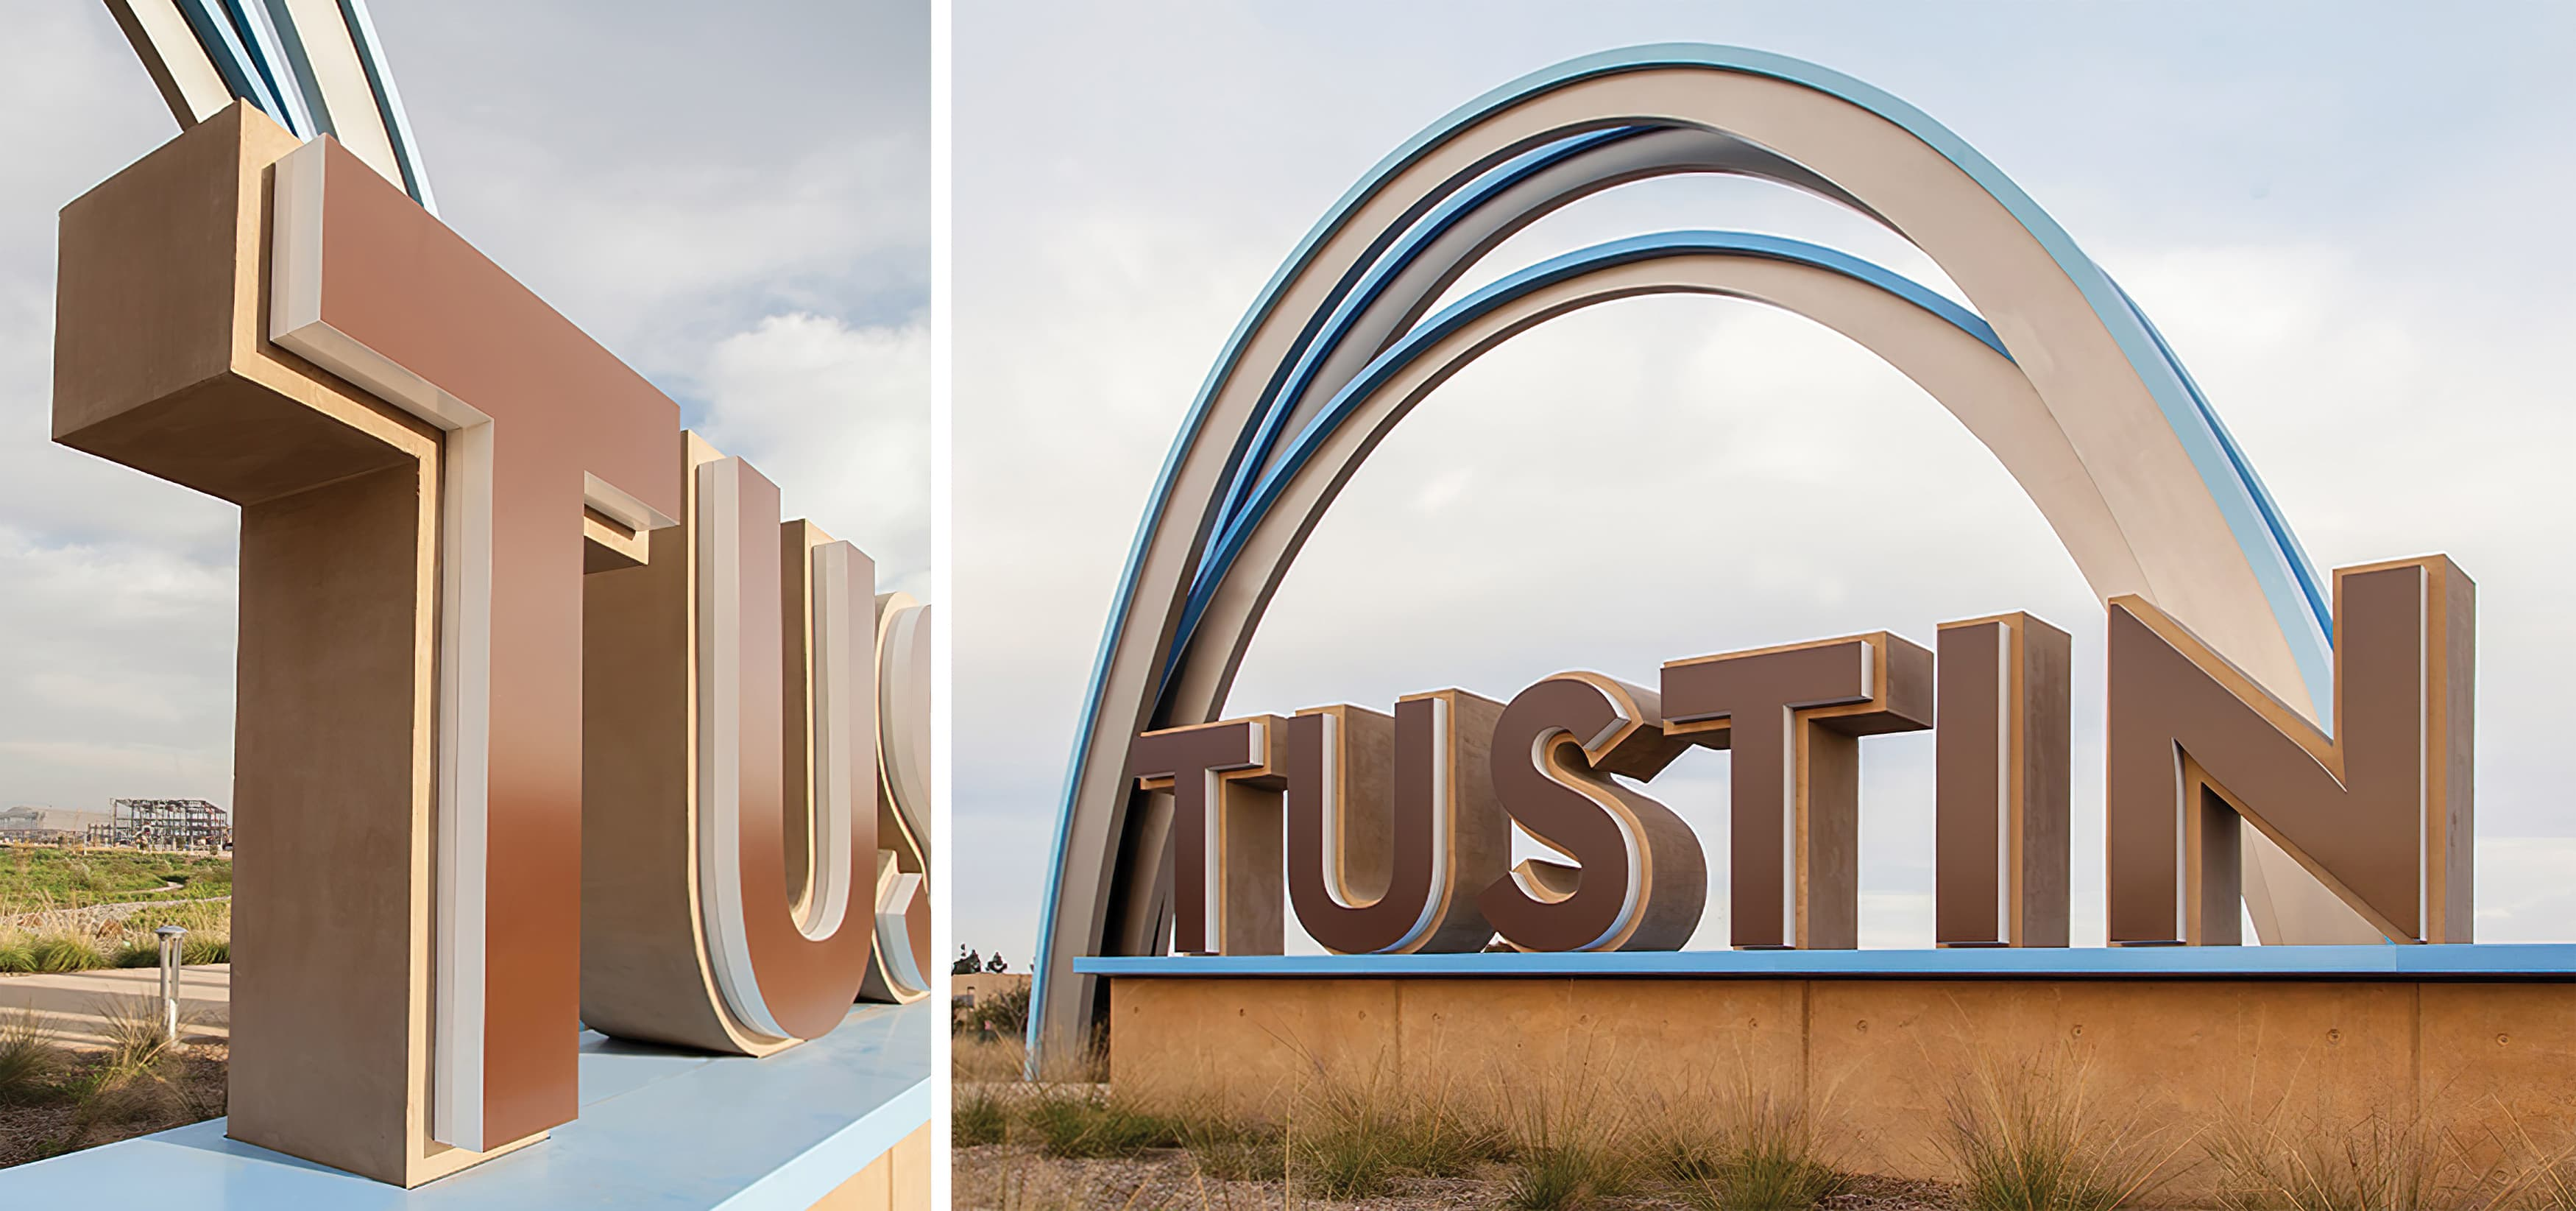 Tustin Legacy, a residential neighborhood in Tustin, California, Project Identity Monument with Iconic Arch